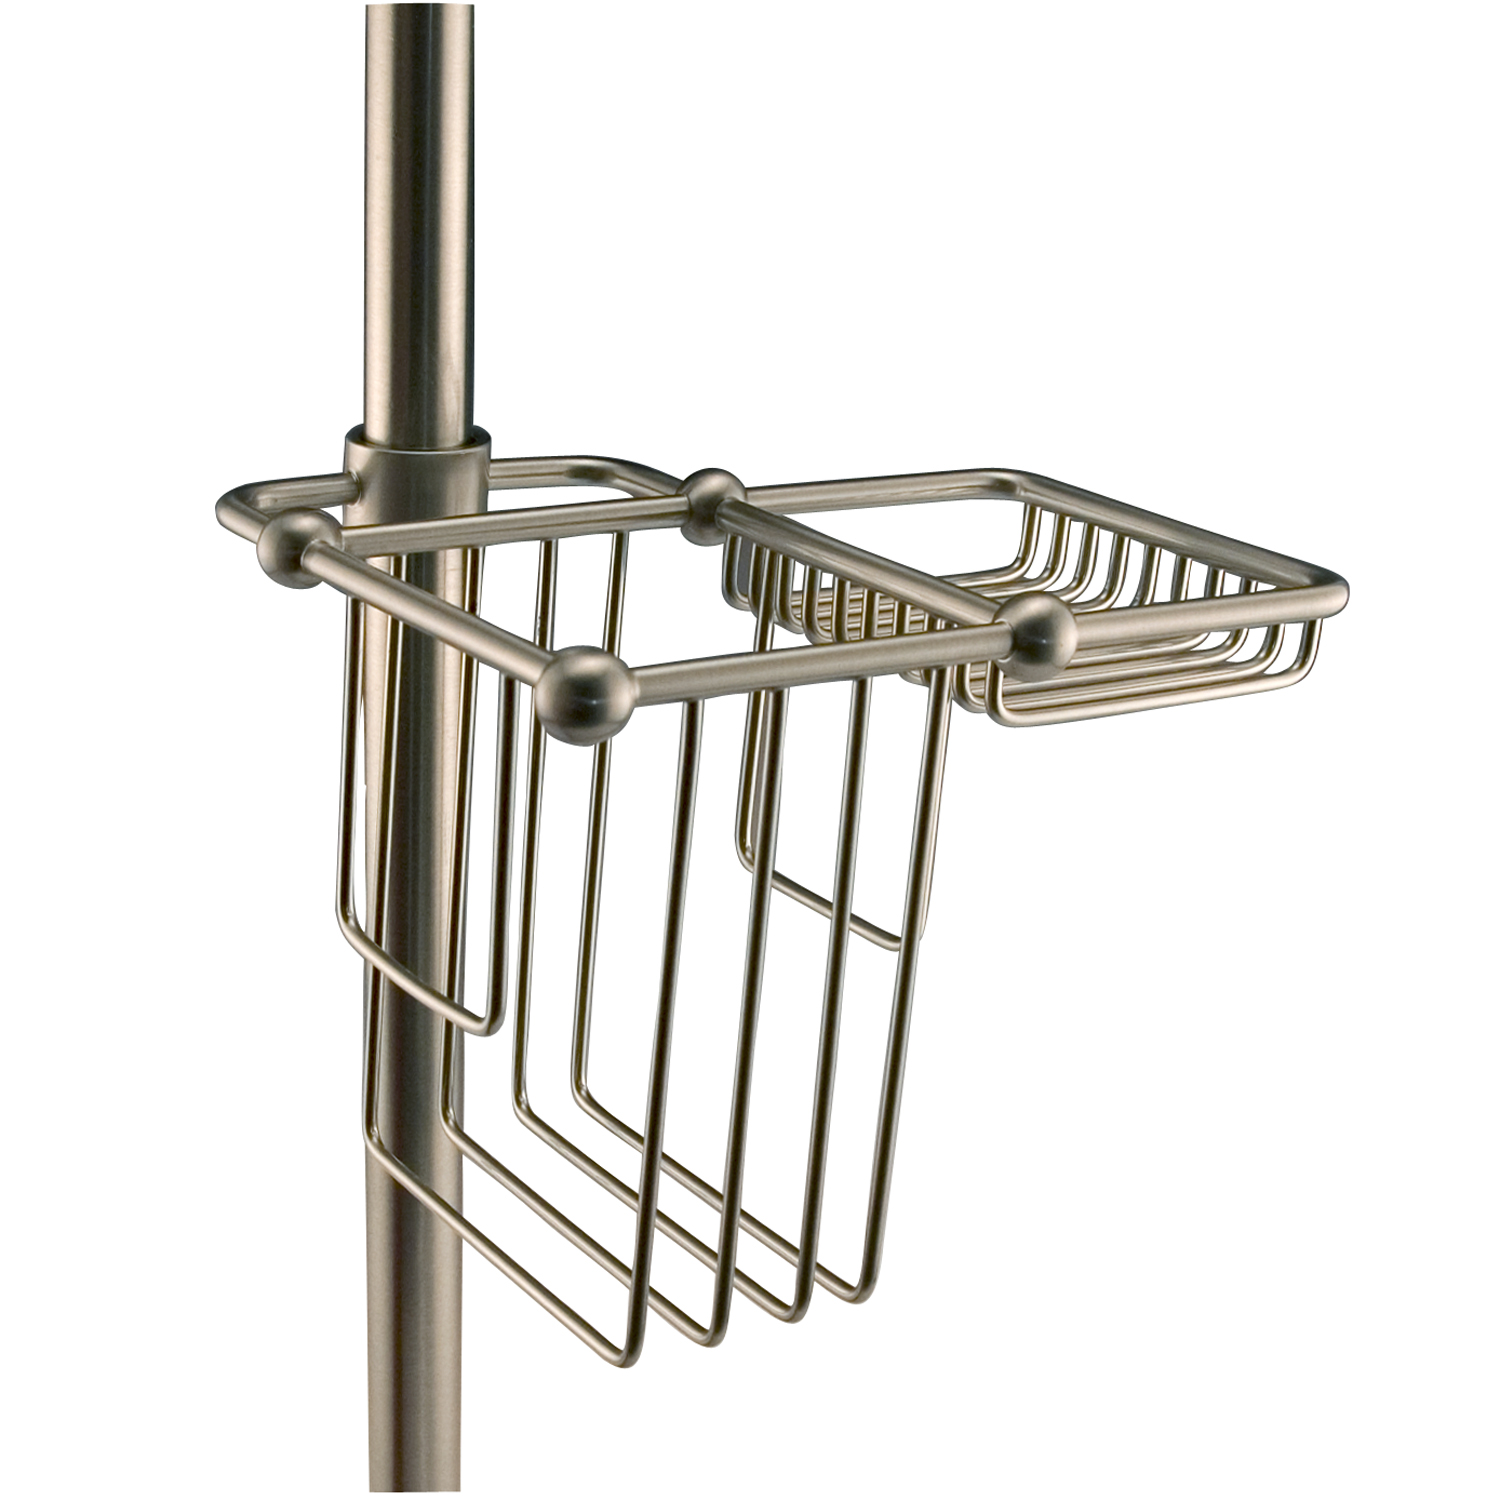 BC2000-CP Bath Caddy for Shower Riser Polished Chrome - Walmart.com